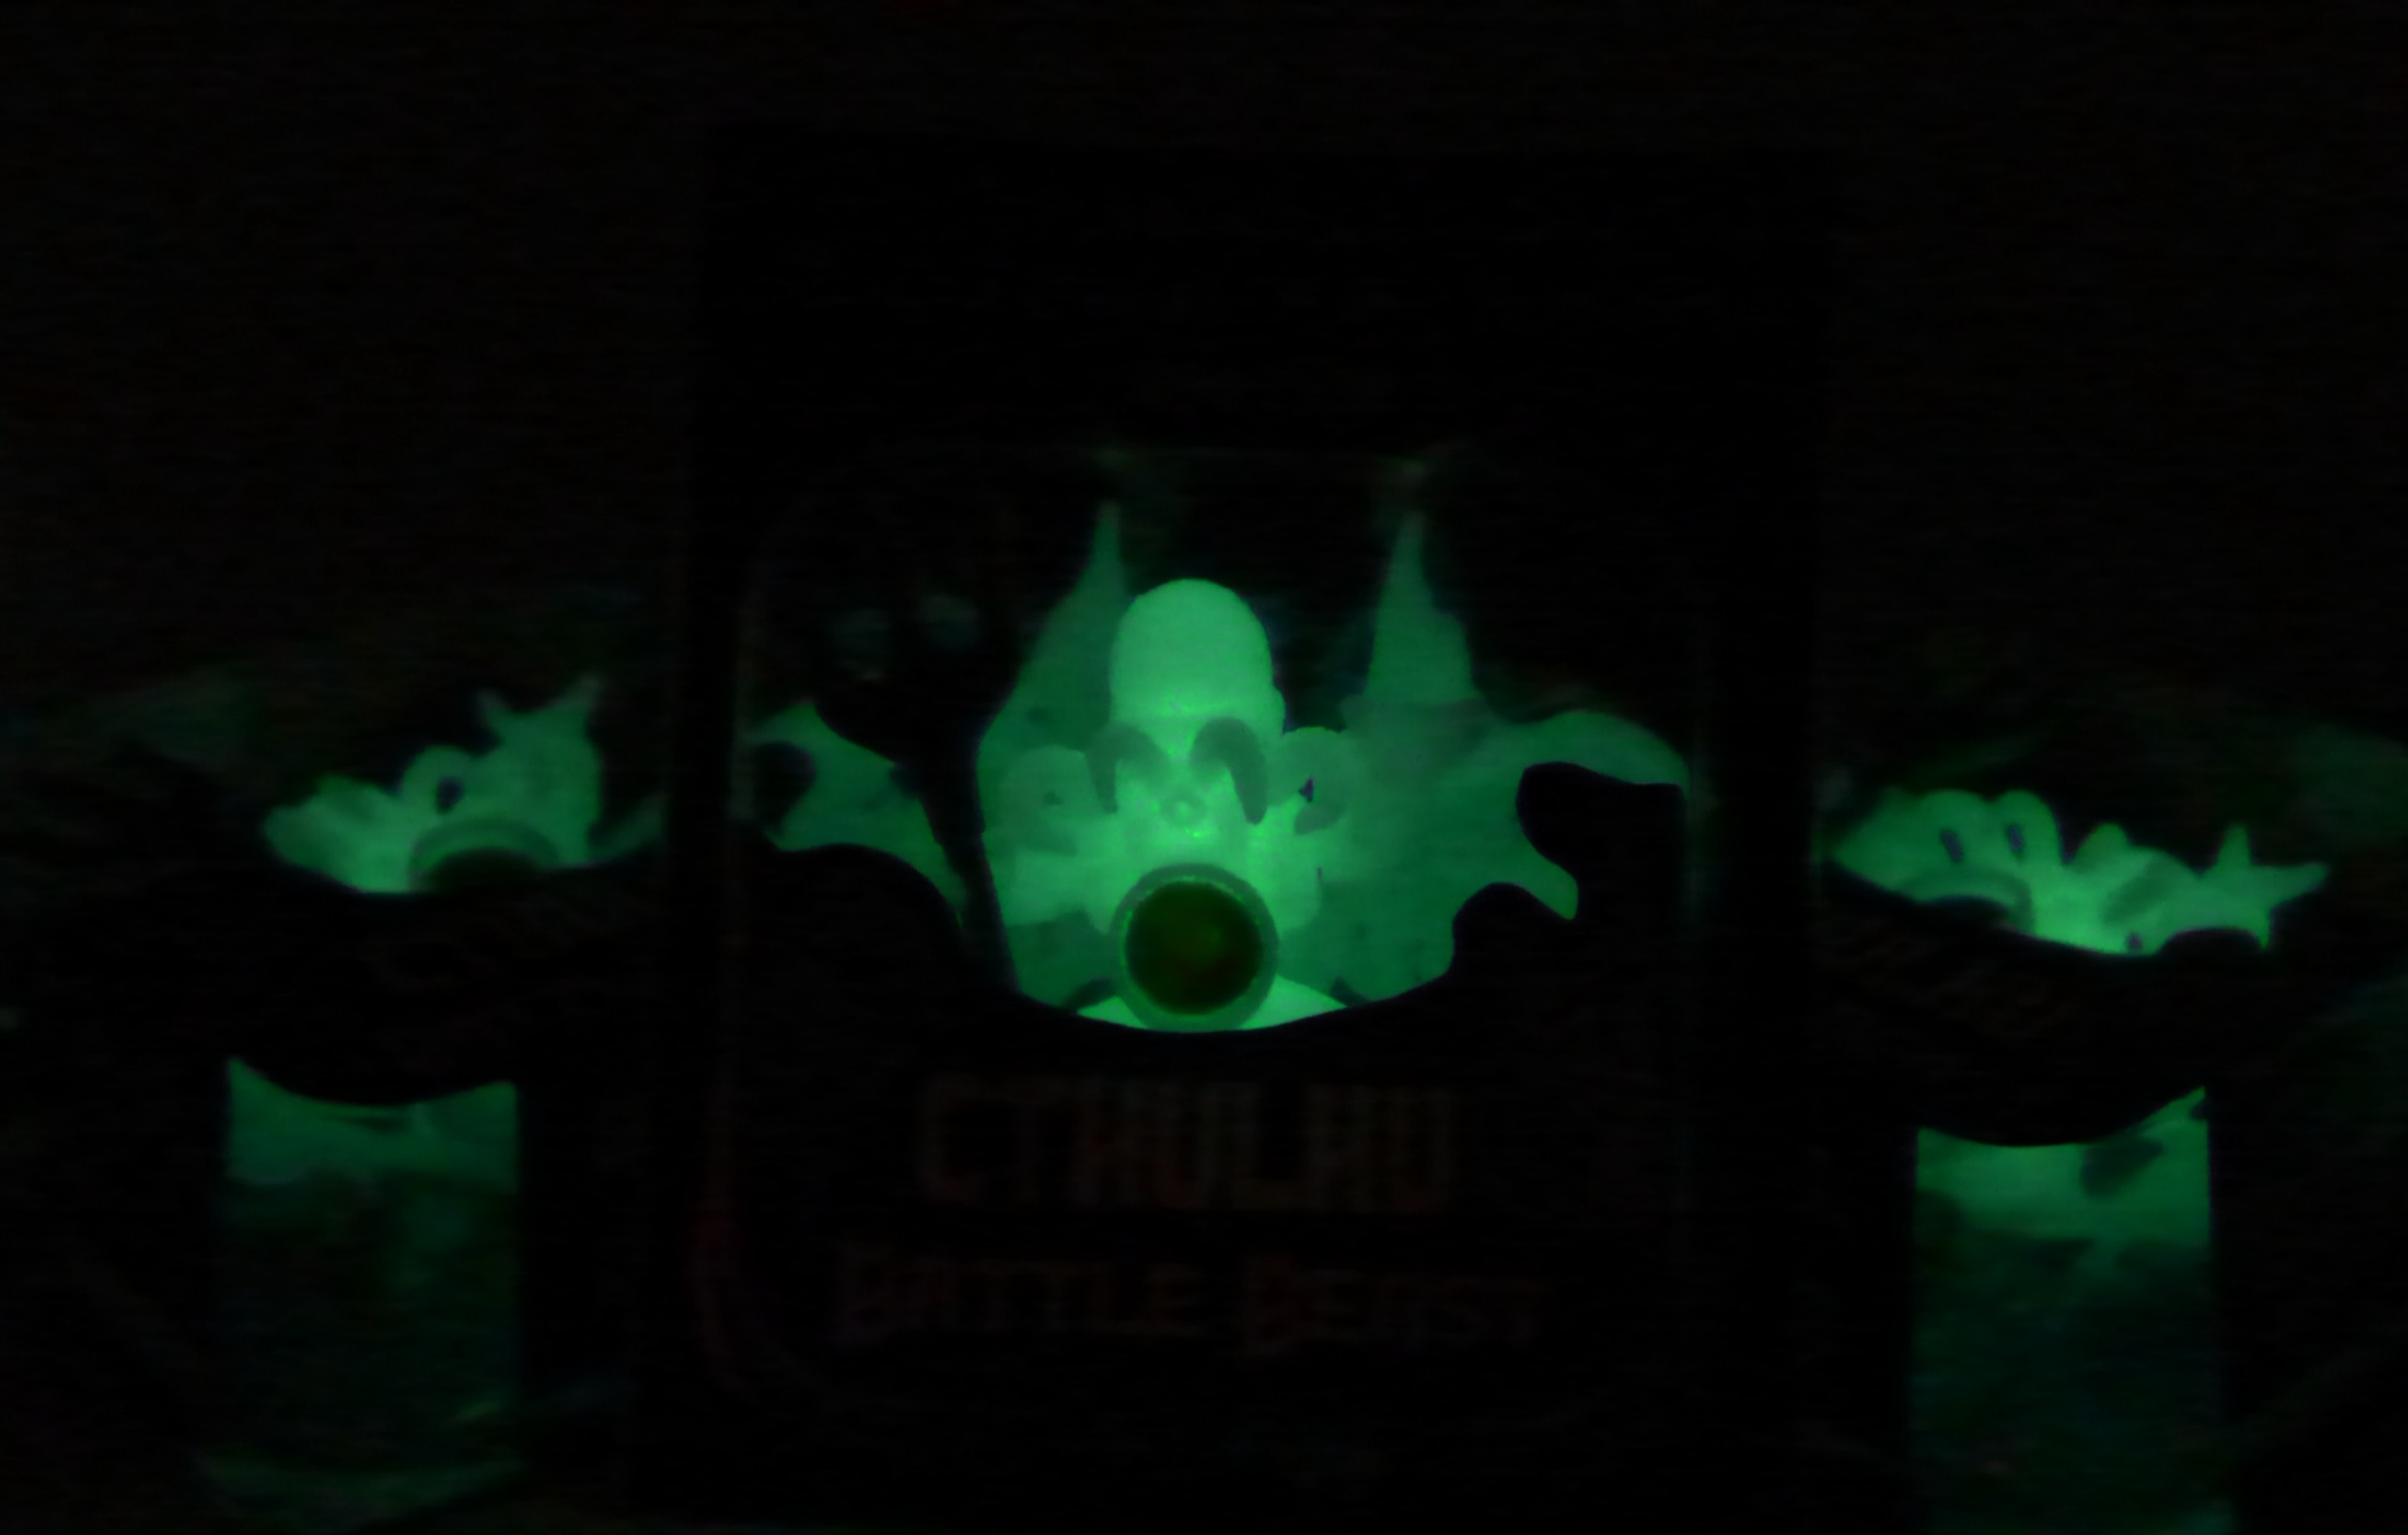 Cthulhu glowing in the dark